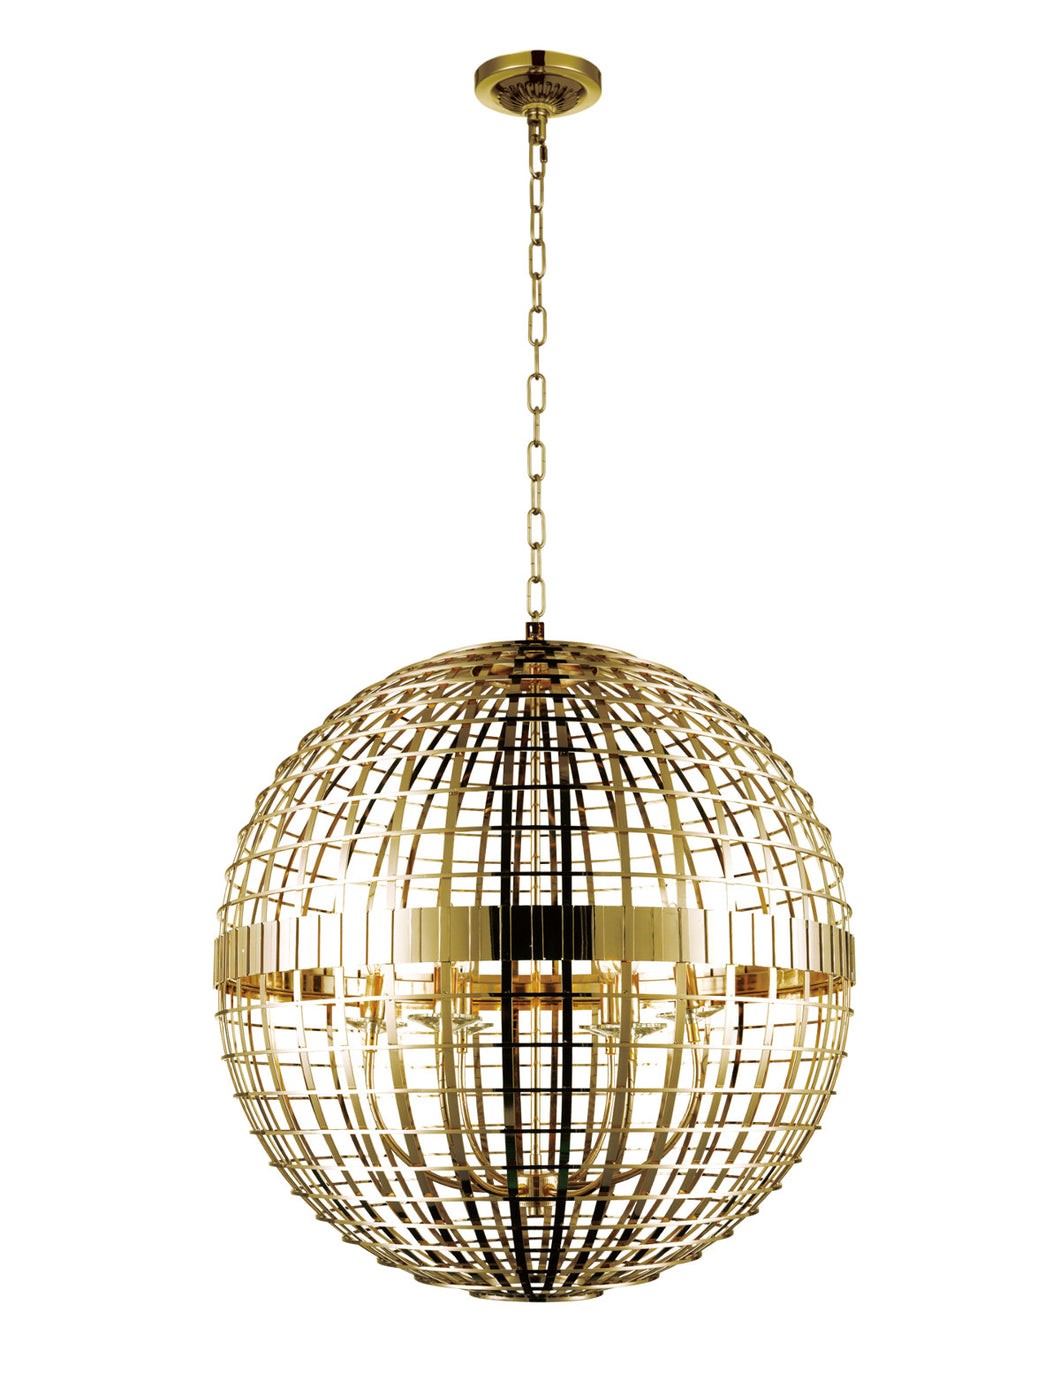 6 Light  Chandelier with Gold finish